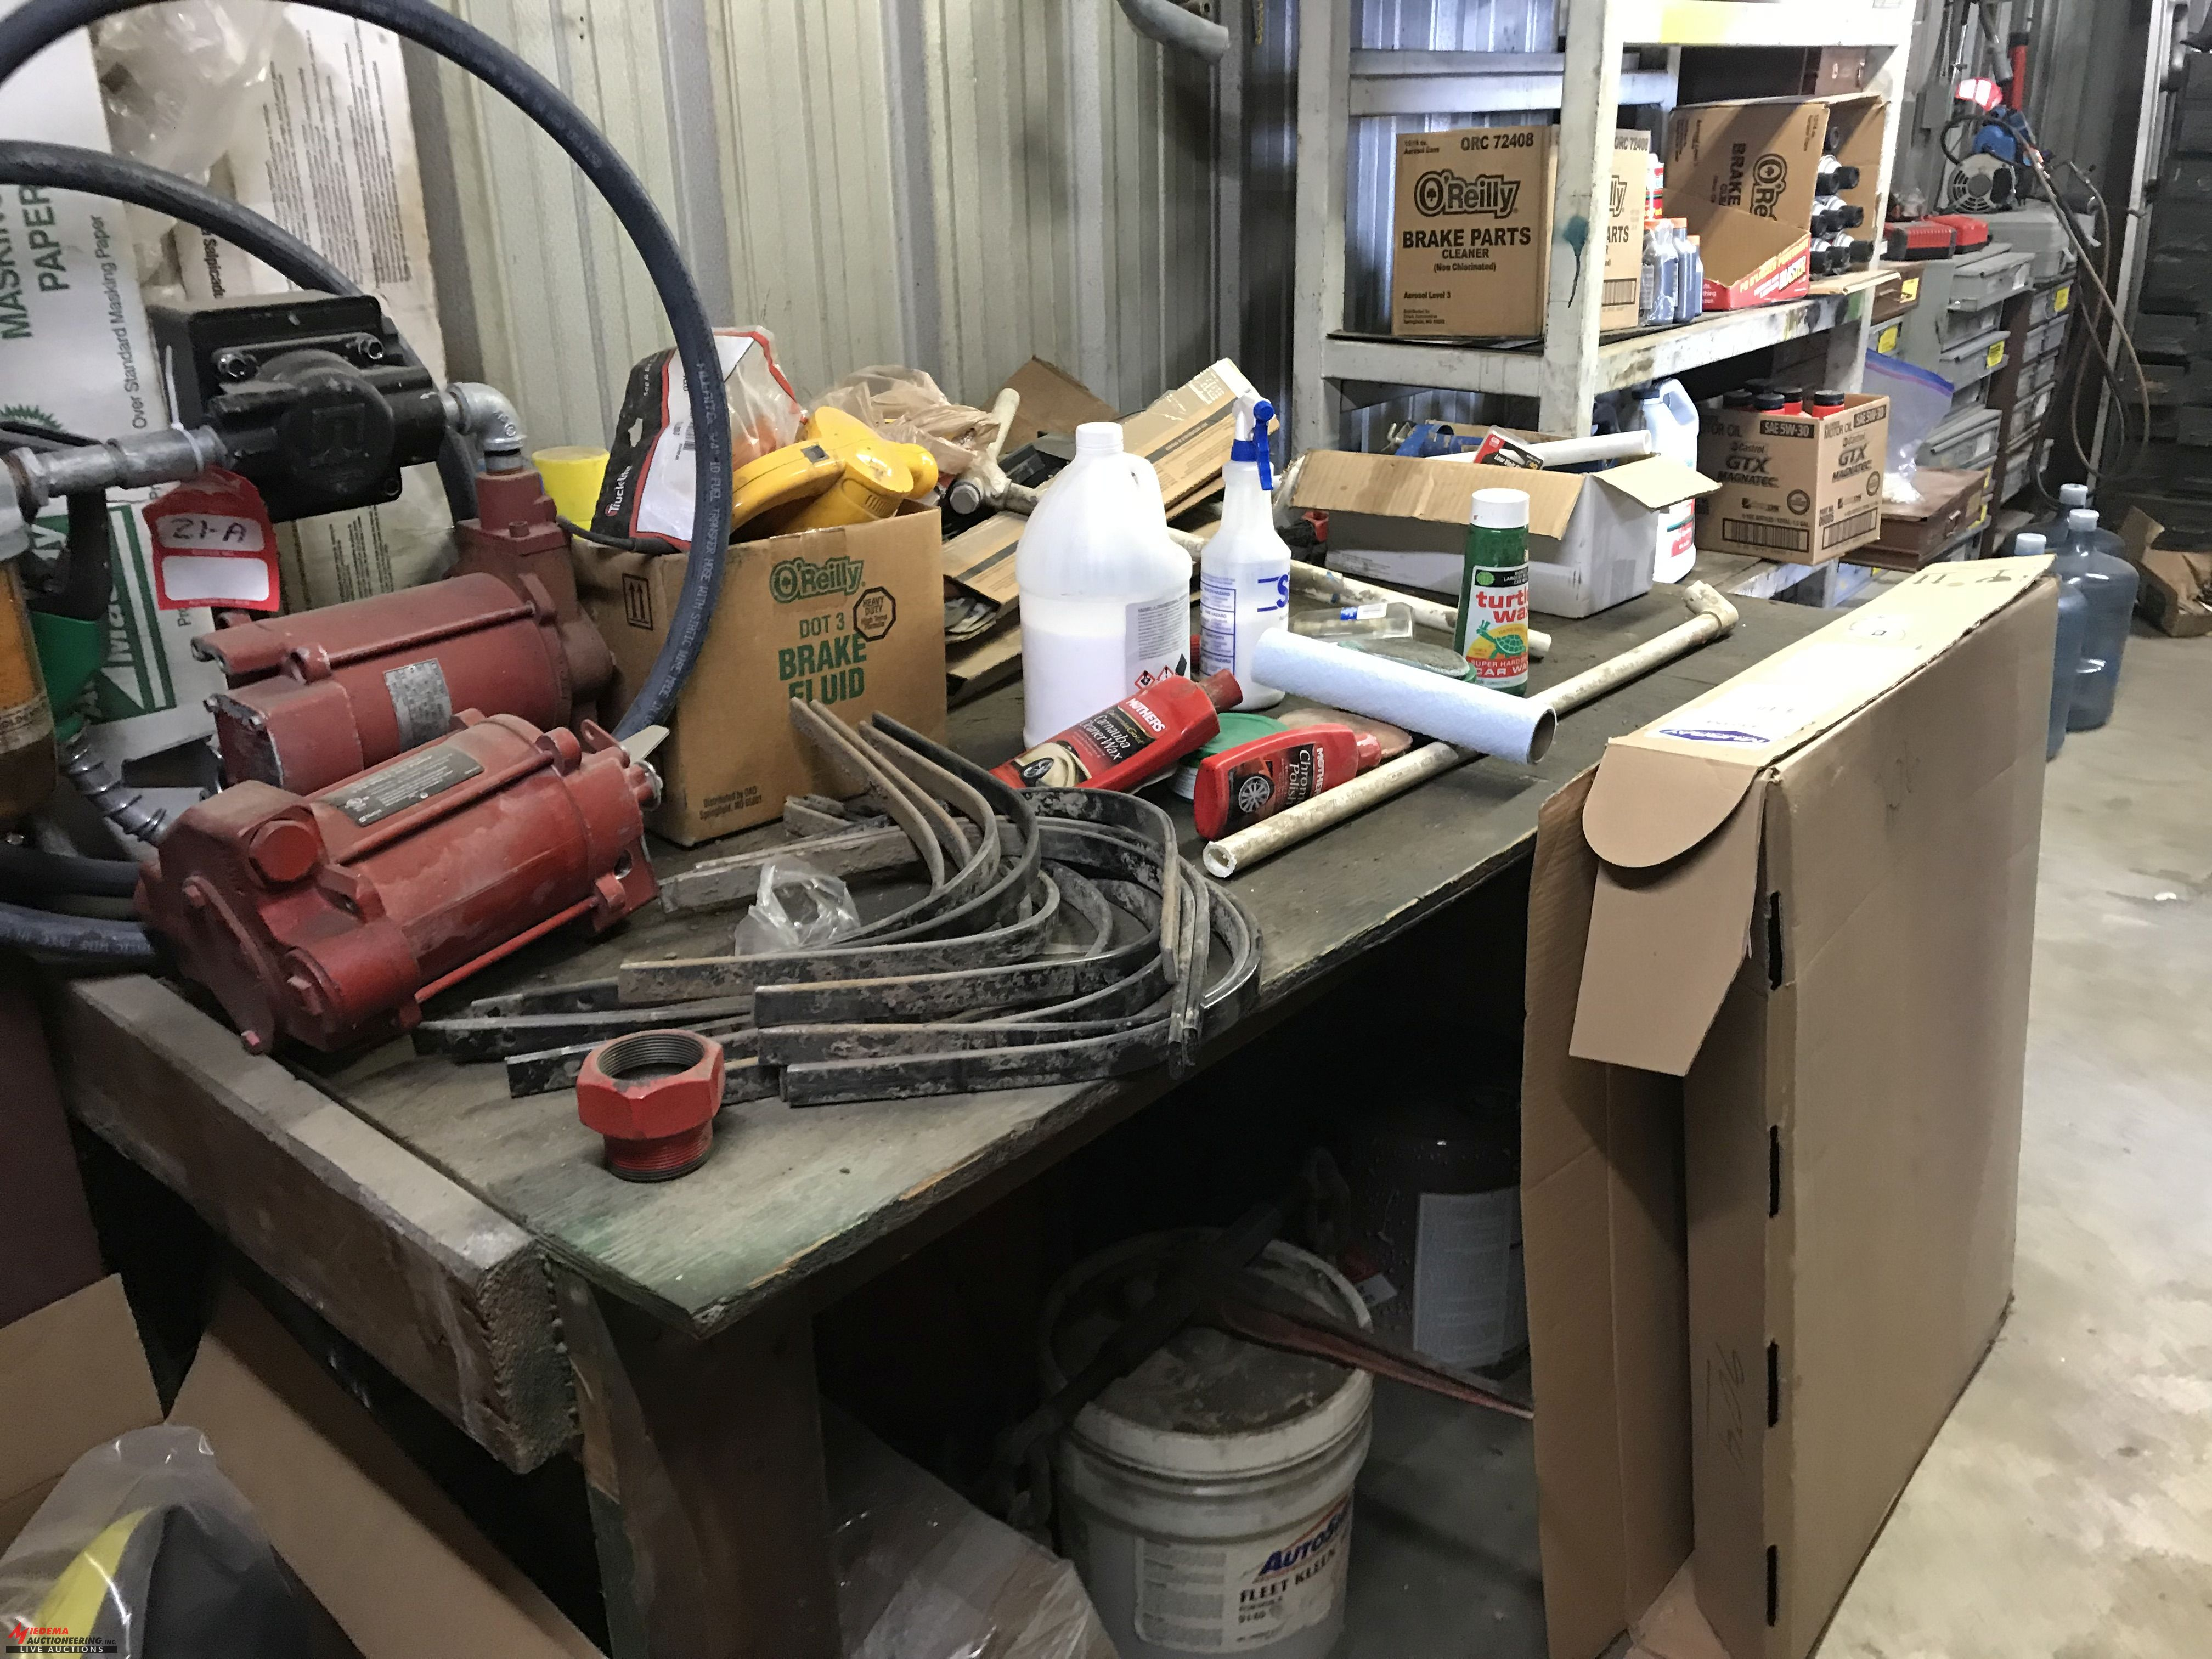 Lot 21A - ELECTRIC FUEL PUMP, WITH HOSE AND NOZZLE, AND ASSORTED BELTS AND SUPPLIES, INCLUDES OILS, BRAKE